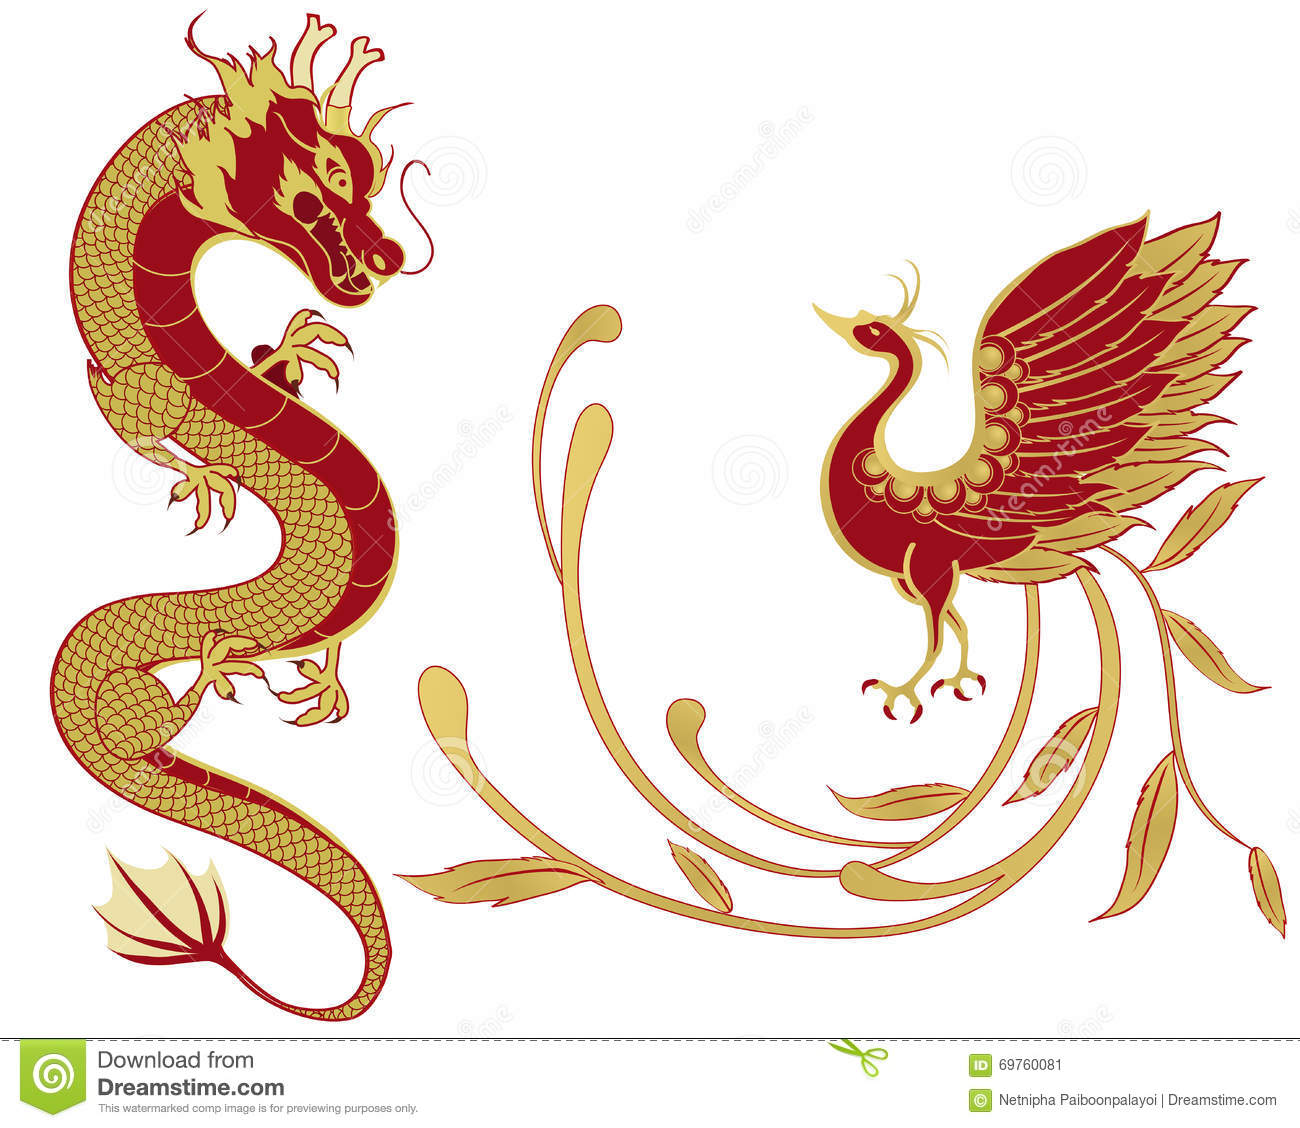 Chinese Dragon And Phoenix Cartoon Vector | CartoonDealer.com #13137779